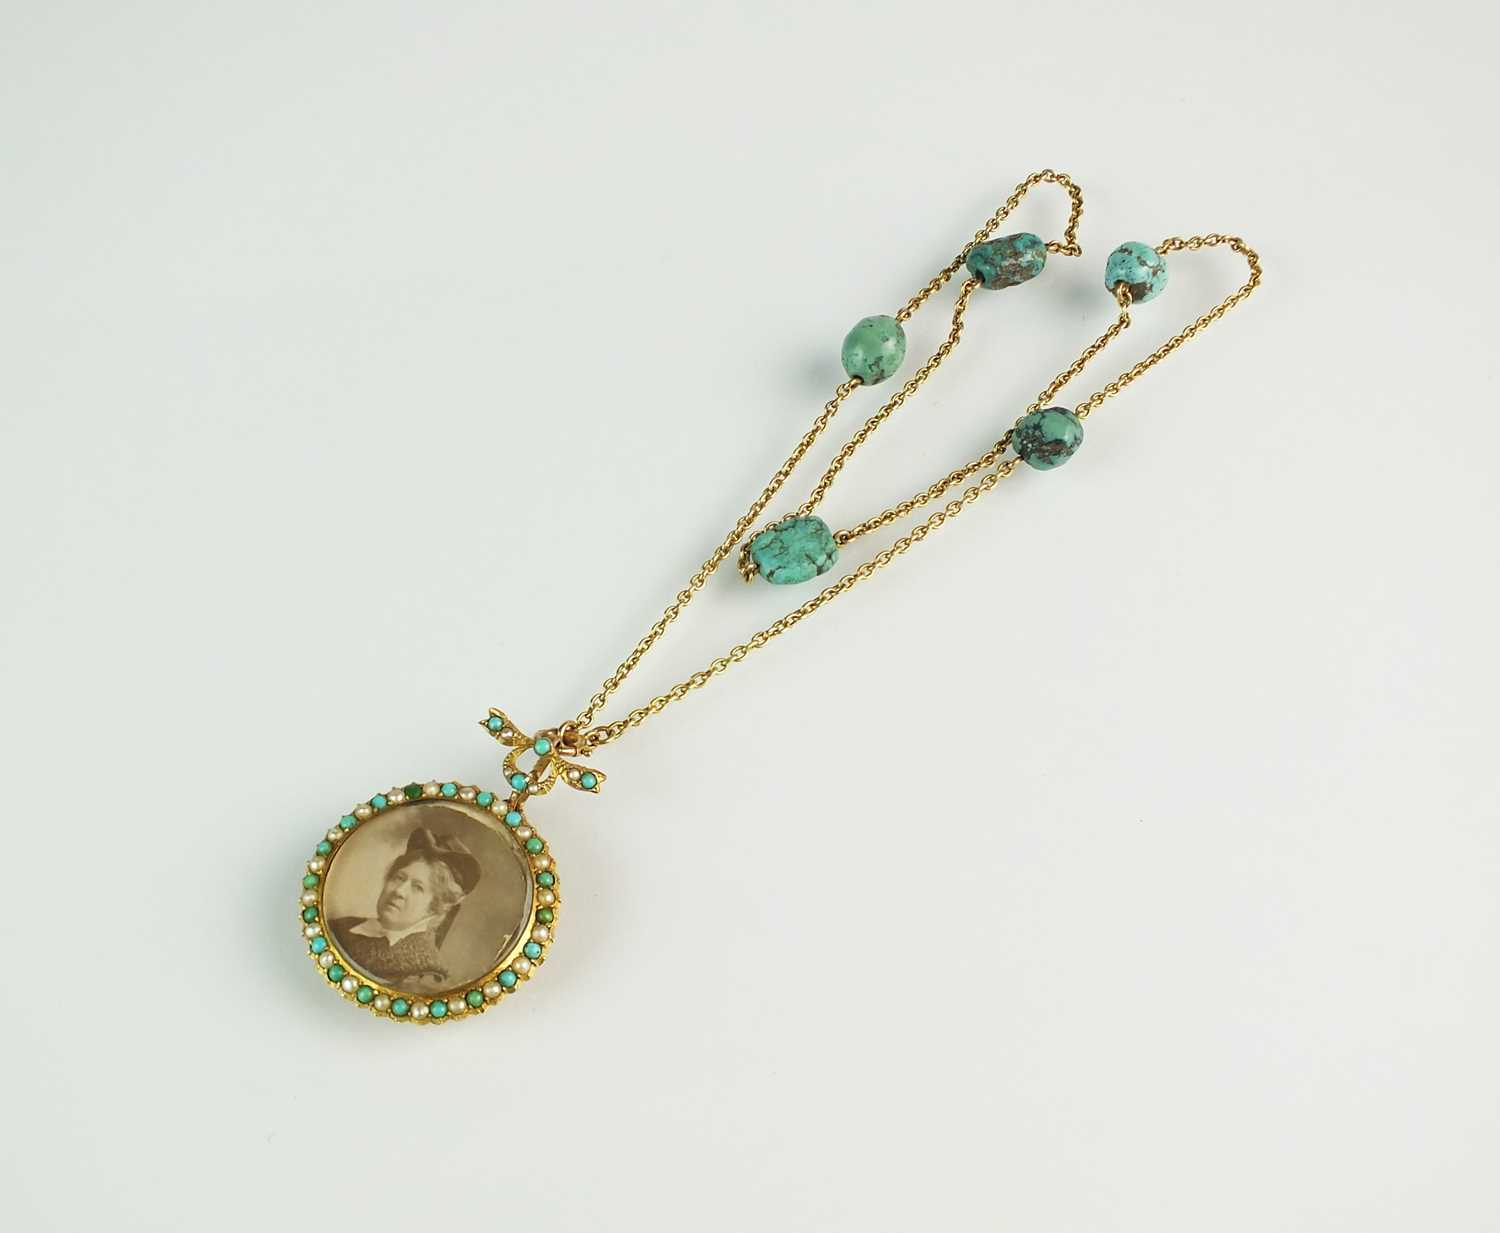 A turquoise and split pearl circular locket pendant - Image 2 of 9